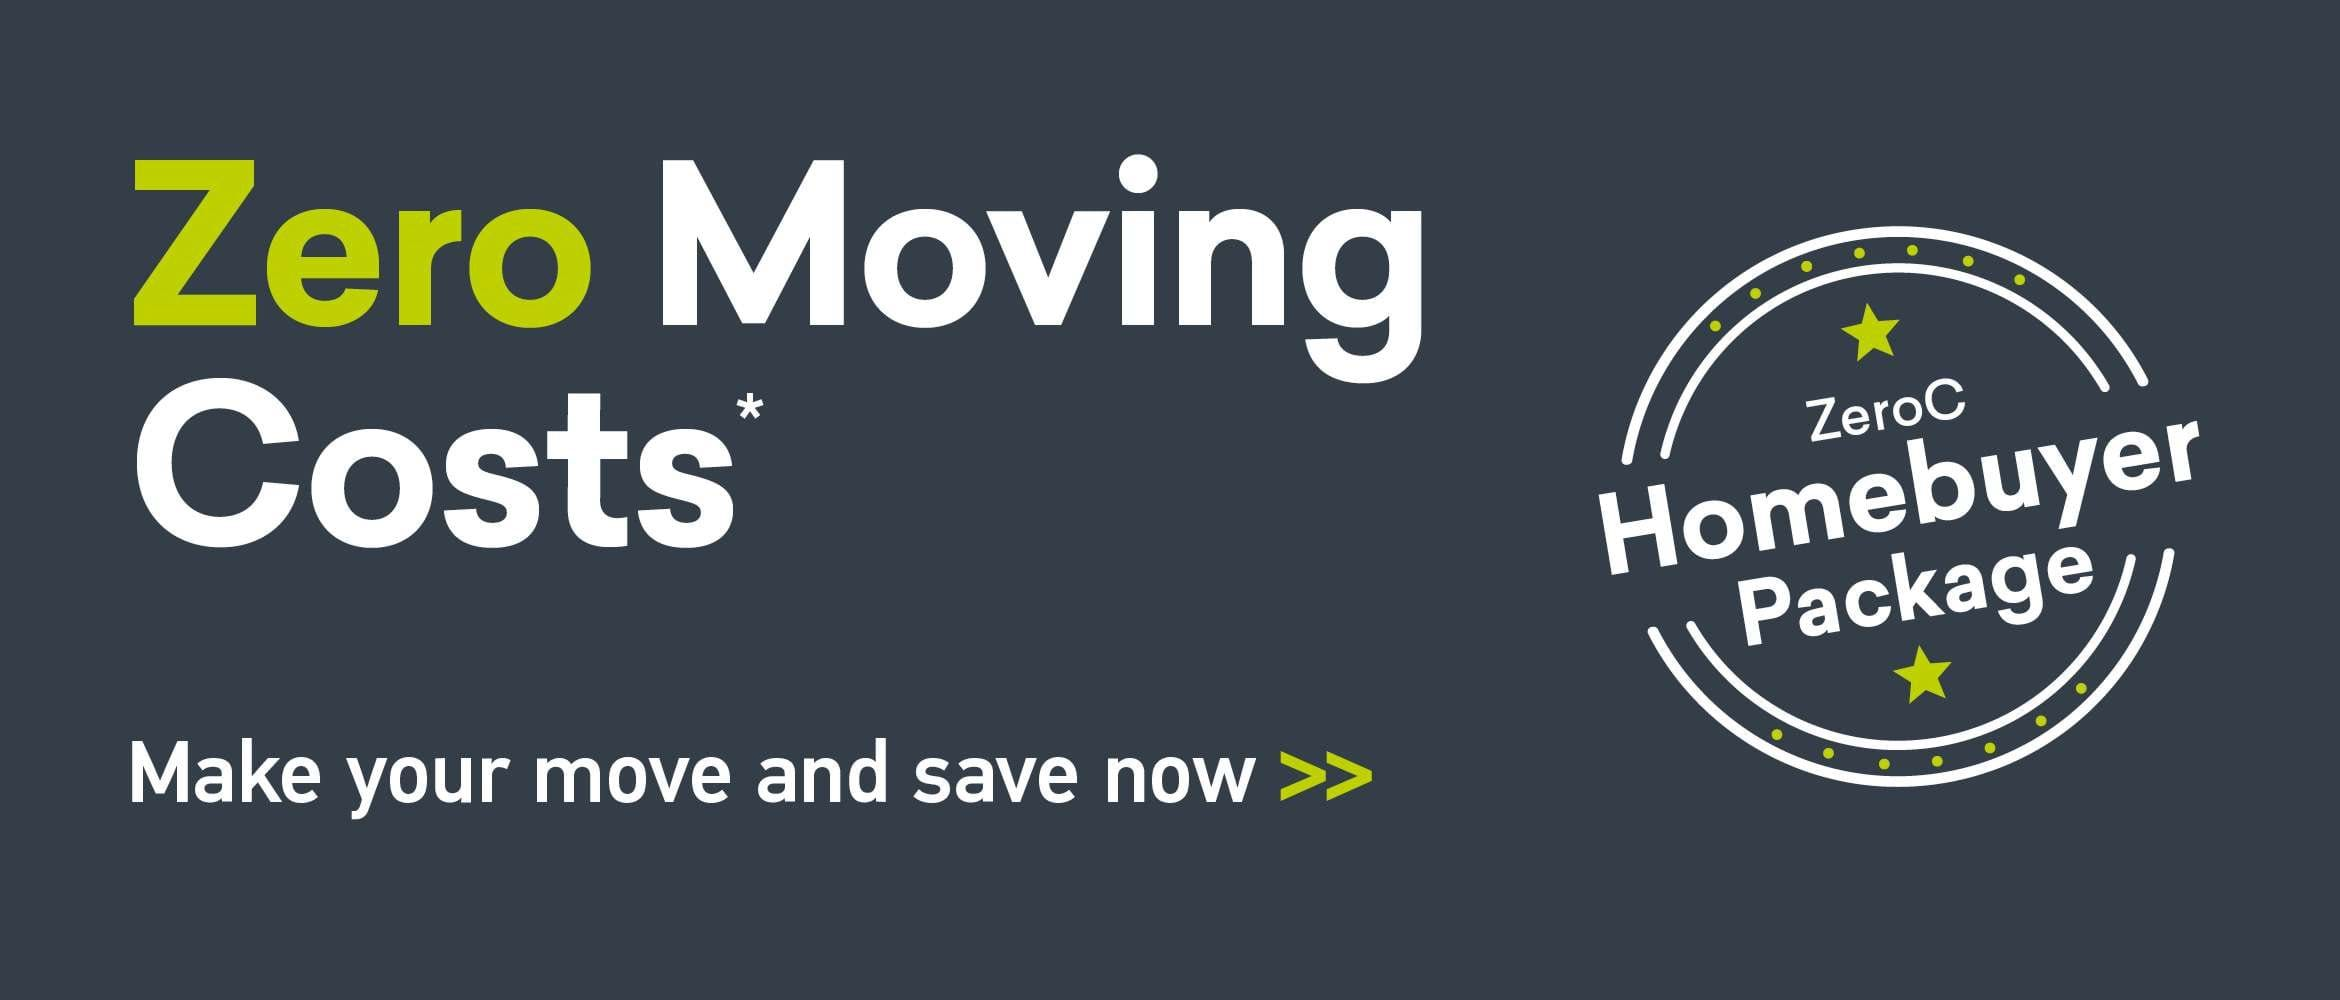 Zero Moving Costs* With Our Exclusive Homebuyer Package